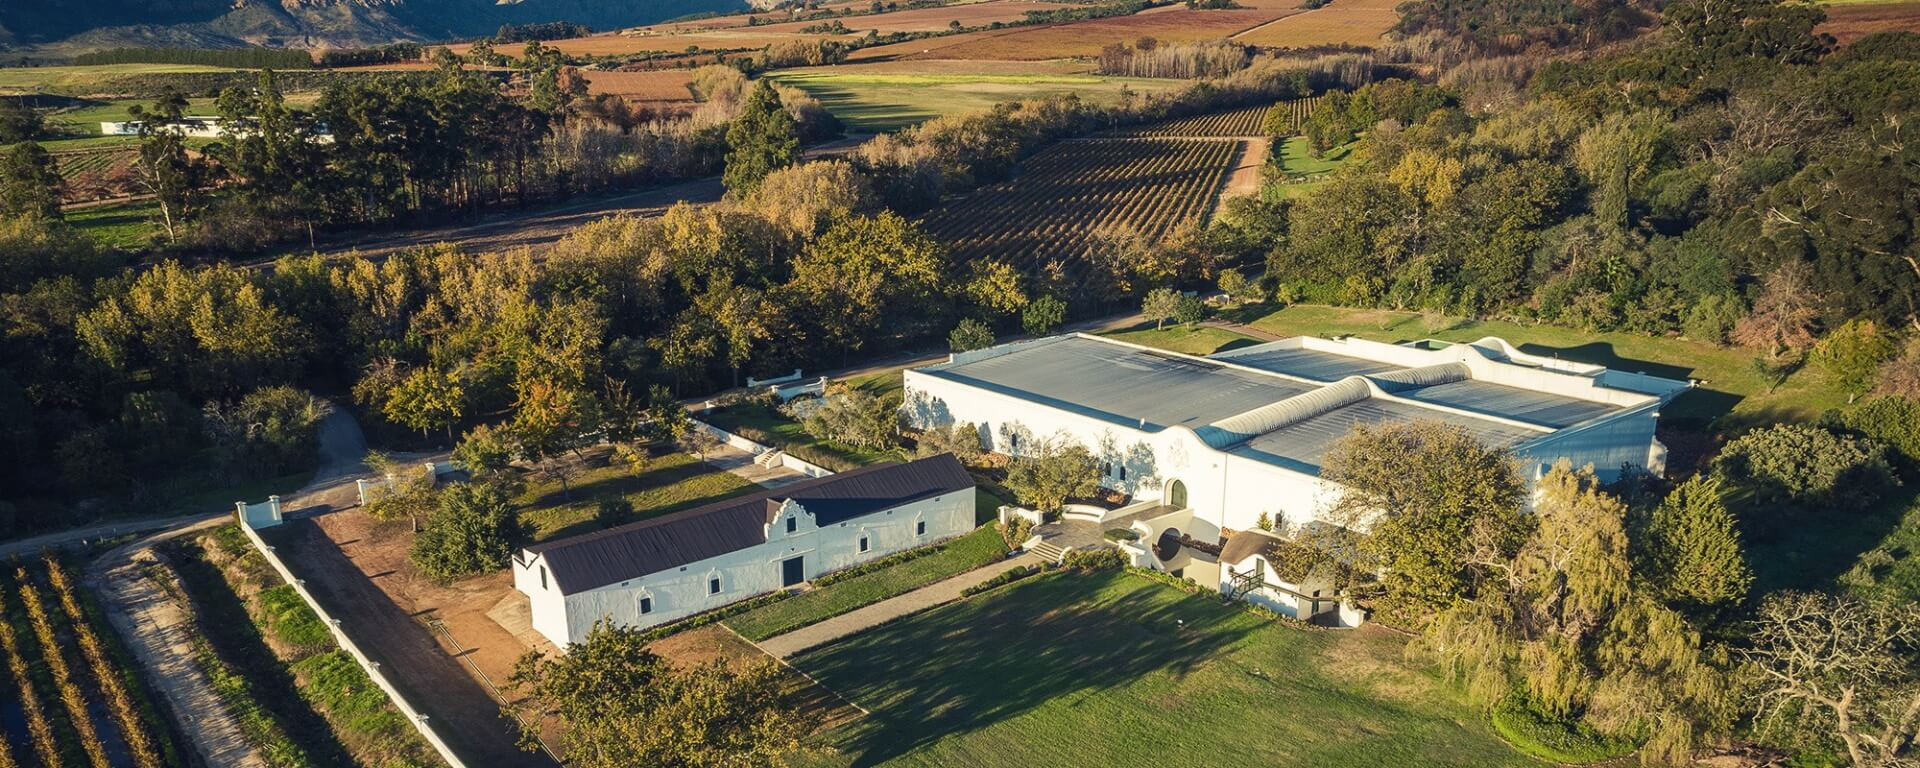 Aerial view of Plaisir de Merle's wine cellar in the Franschhoek winelands